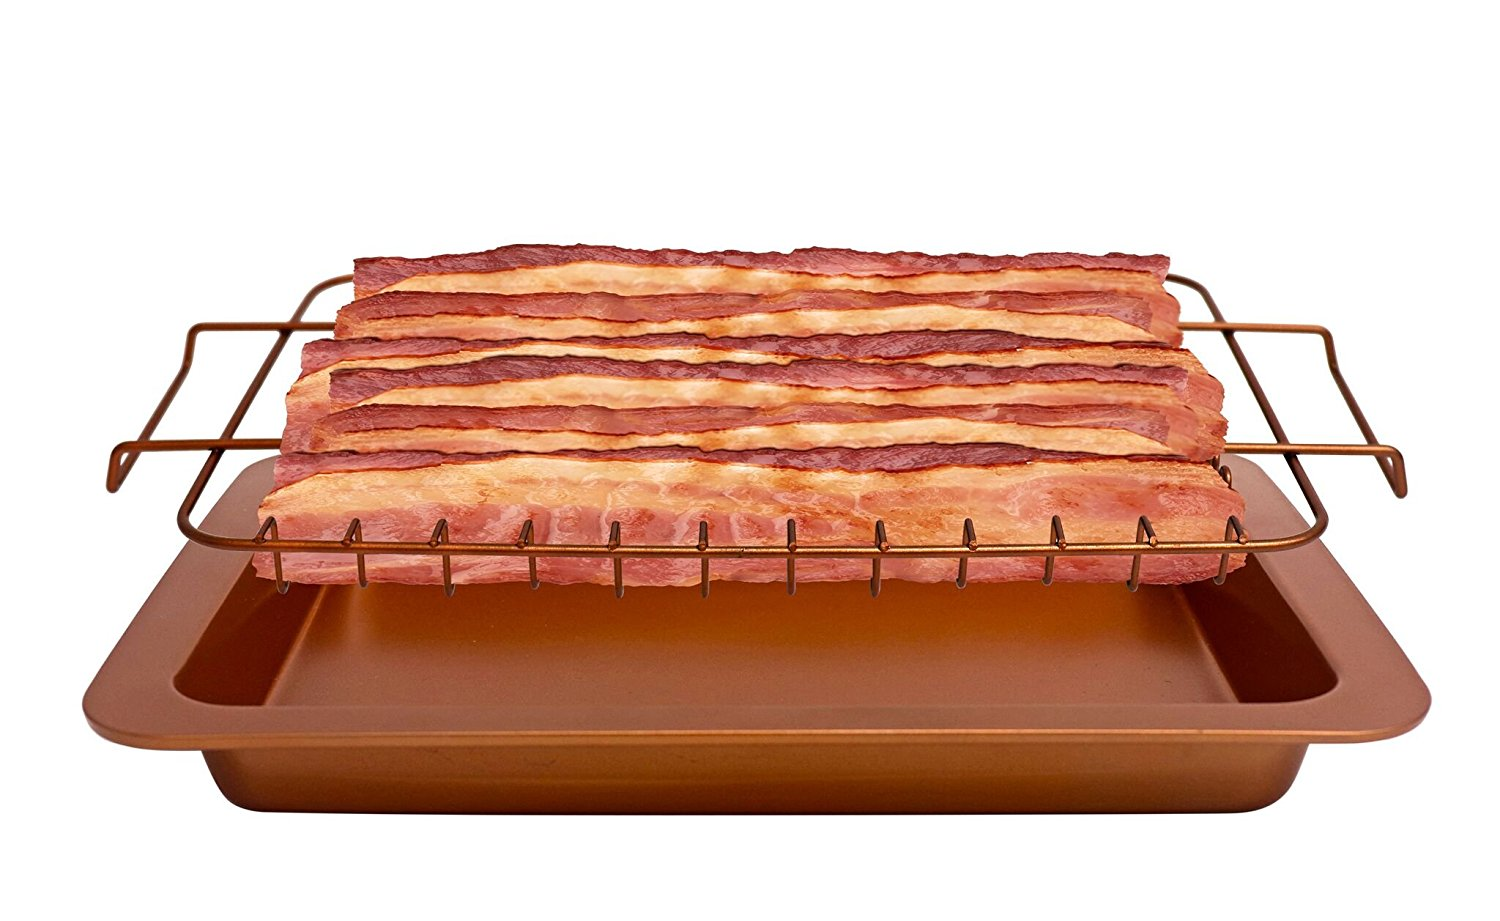 Oven Bacon Rack What A Time Saver Cooking With Brad